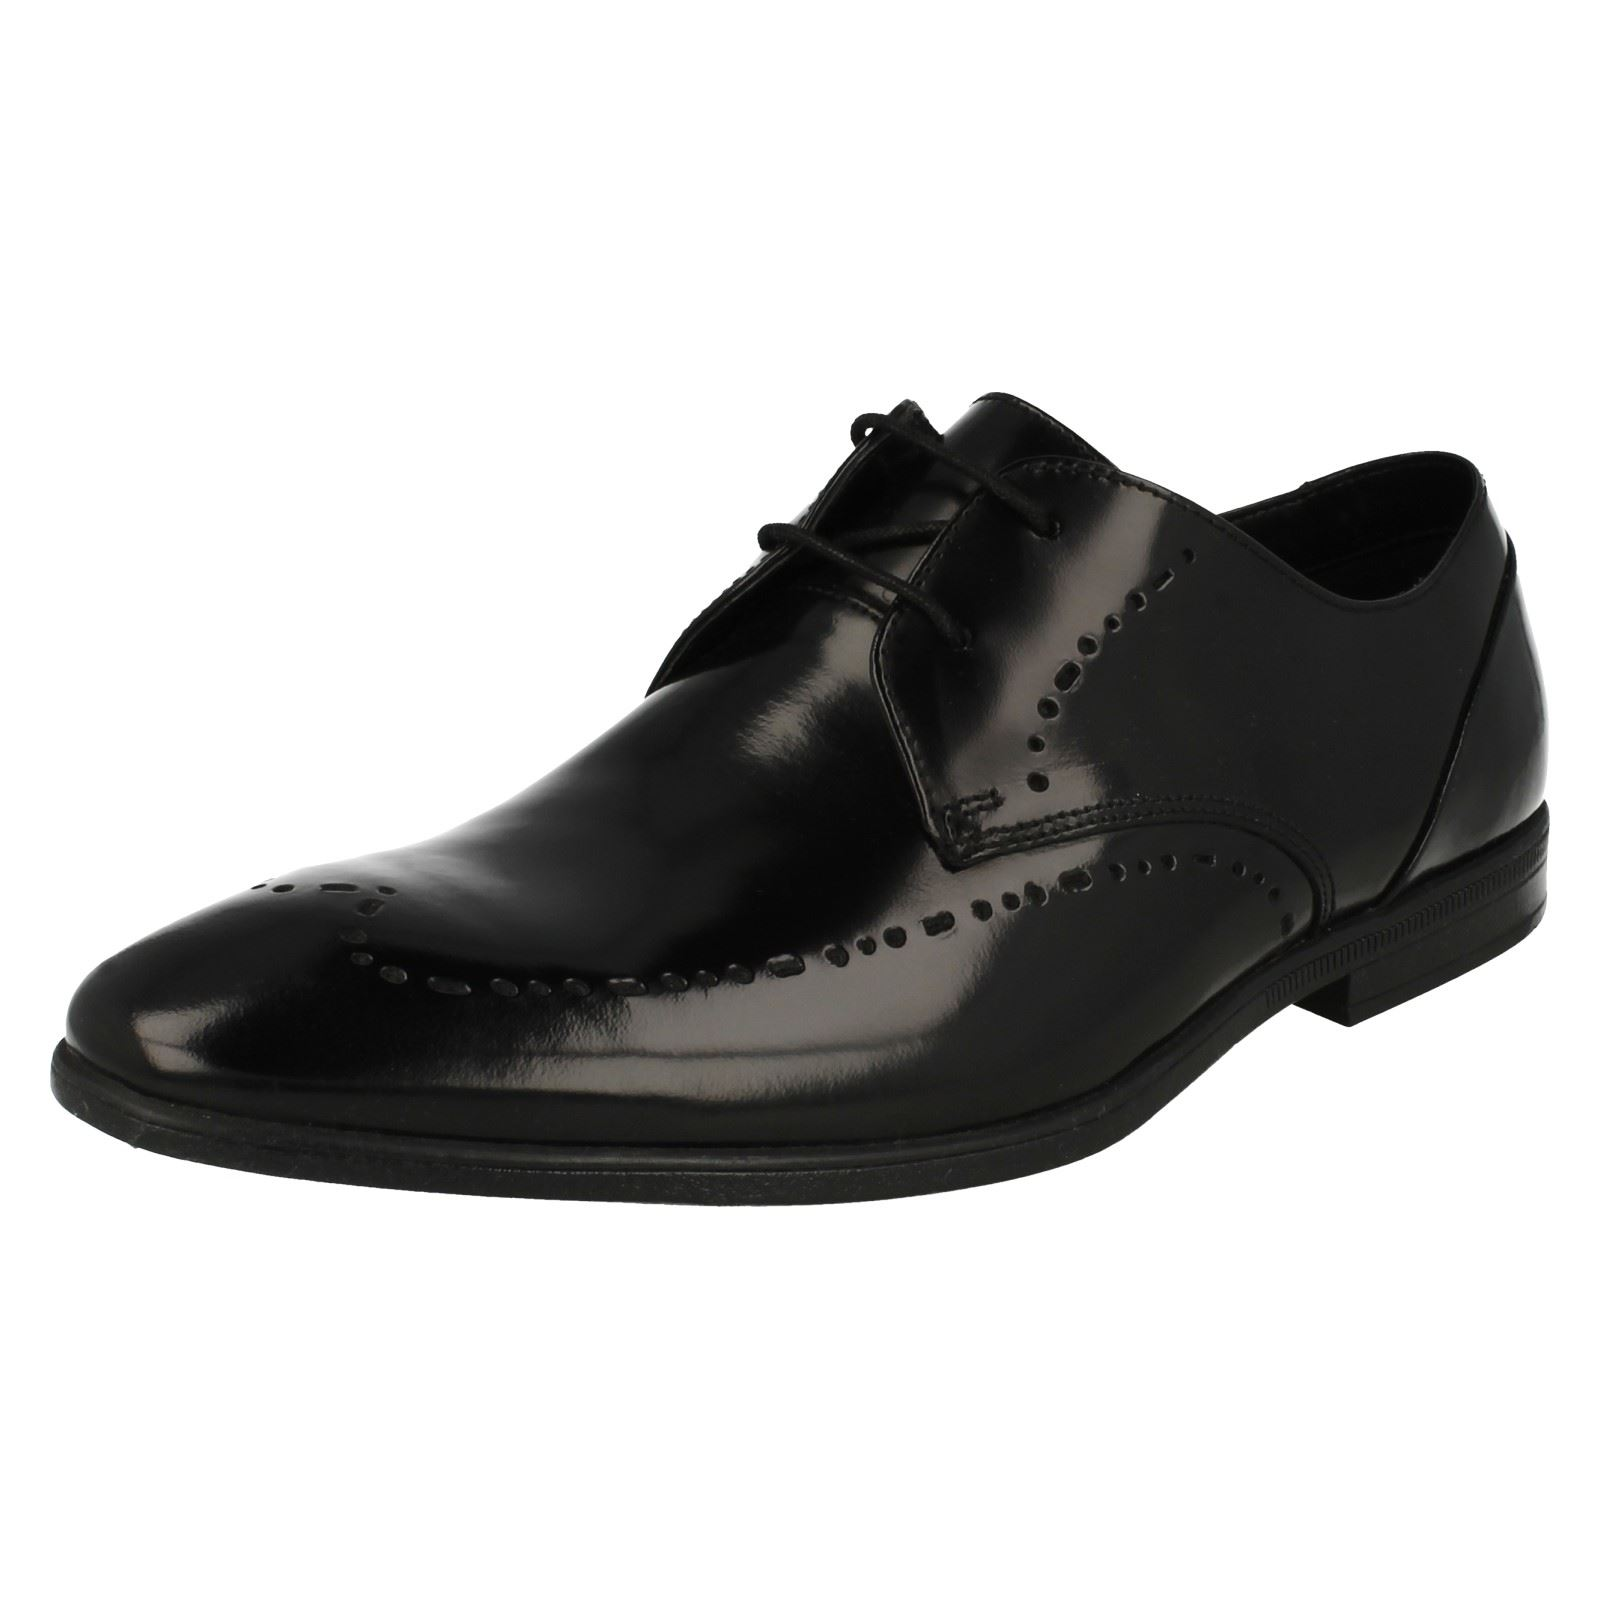 mens clarks formal wear lace up shoes bton limit ebay